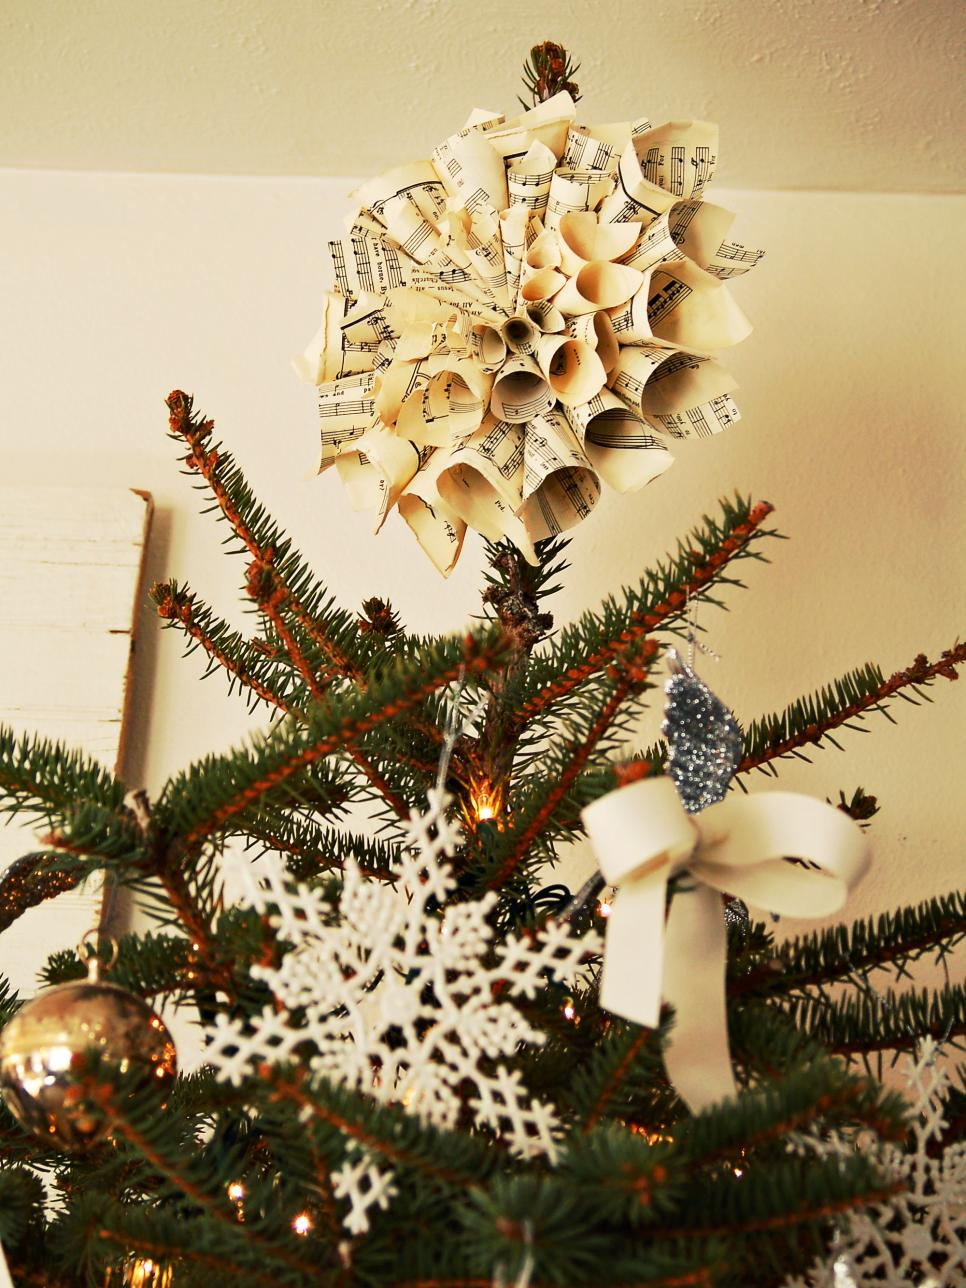 View in gallery Handmade tree topper made from old music sheets